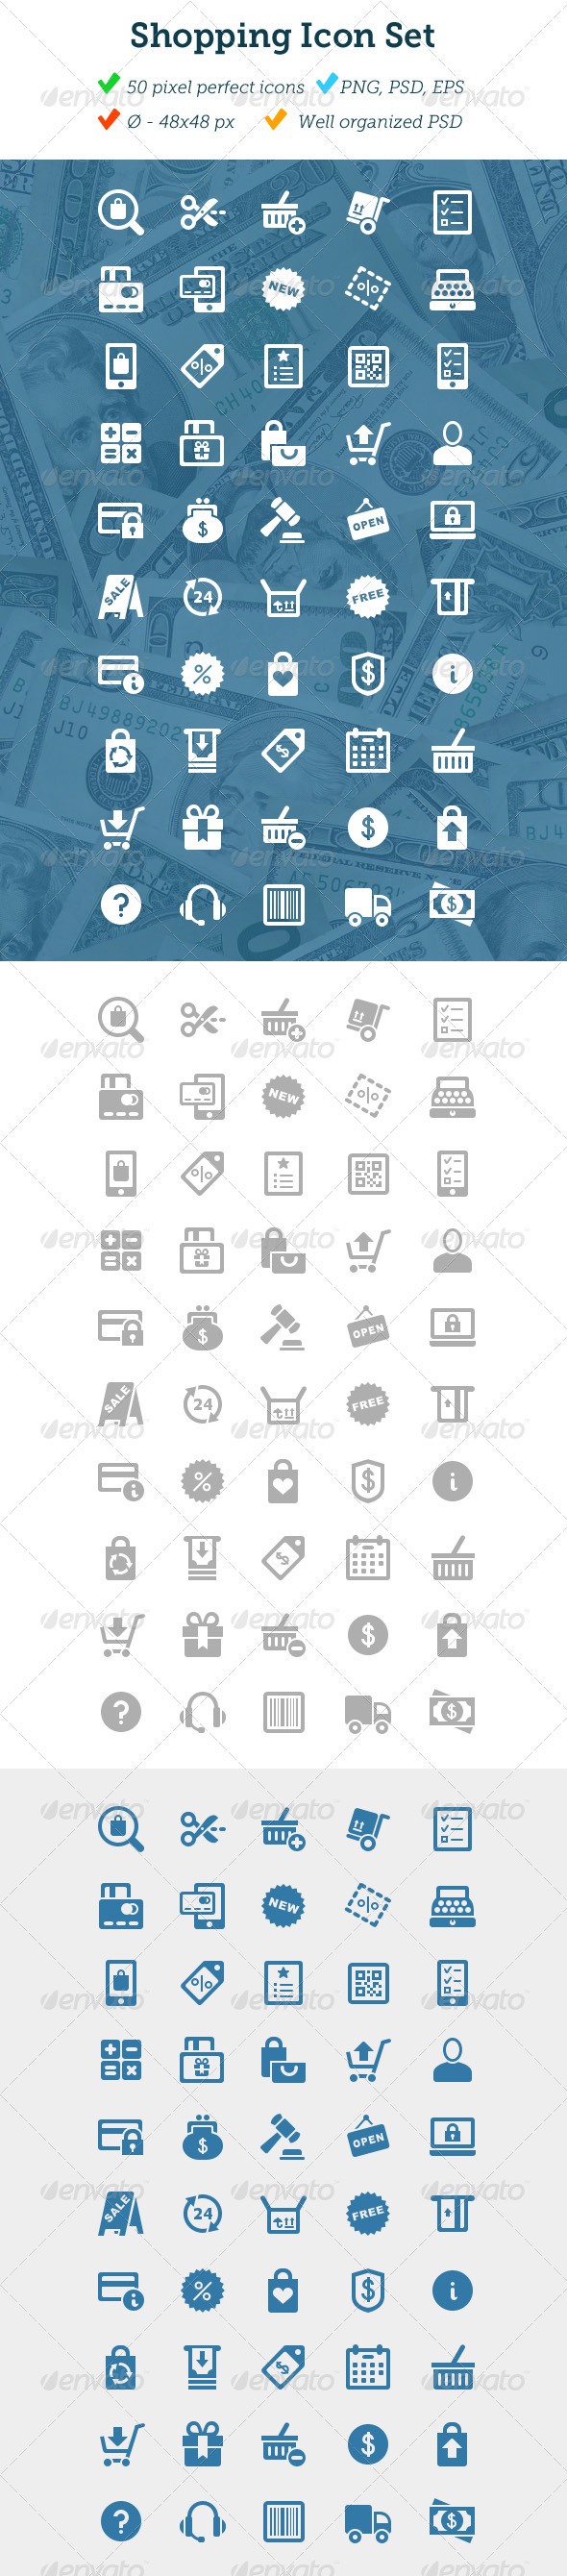 GraphicRiver Shopping Icon Set 3100674